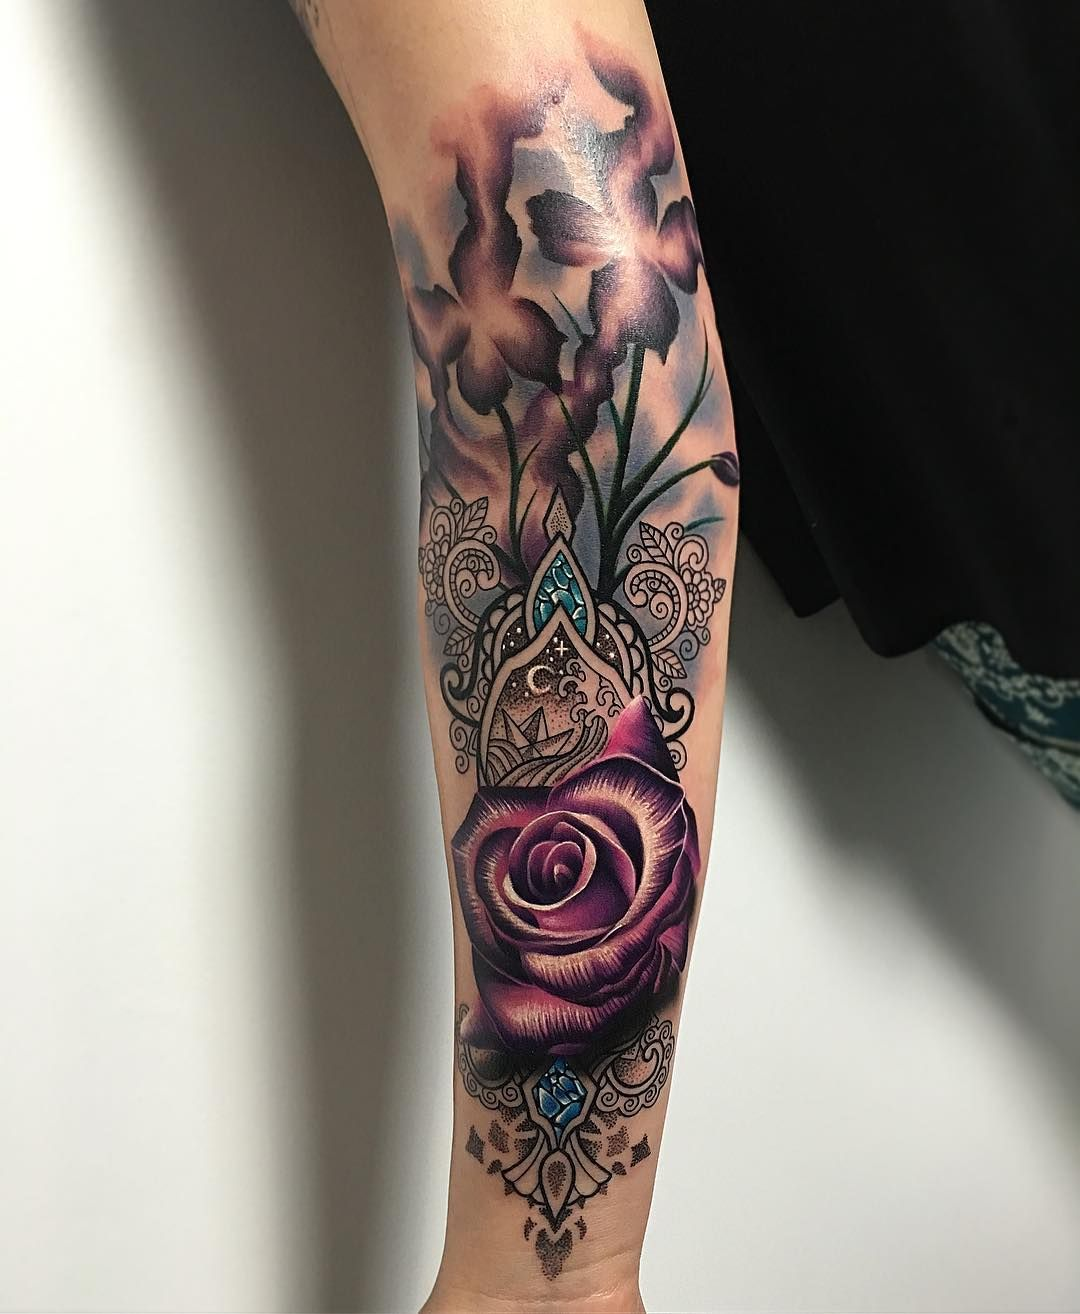 82cd52fe713a6 Tattoo art by RyanSmith Tattooist | Ink | Tattoos, Flower tattoos ...